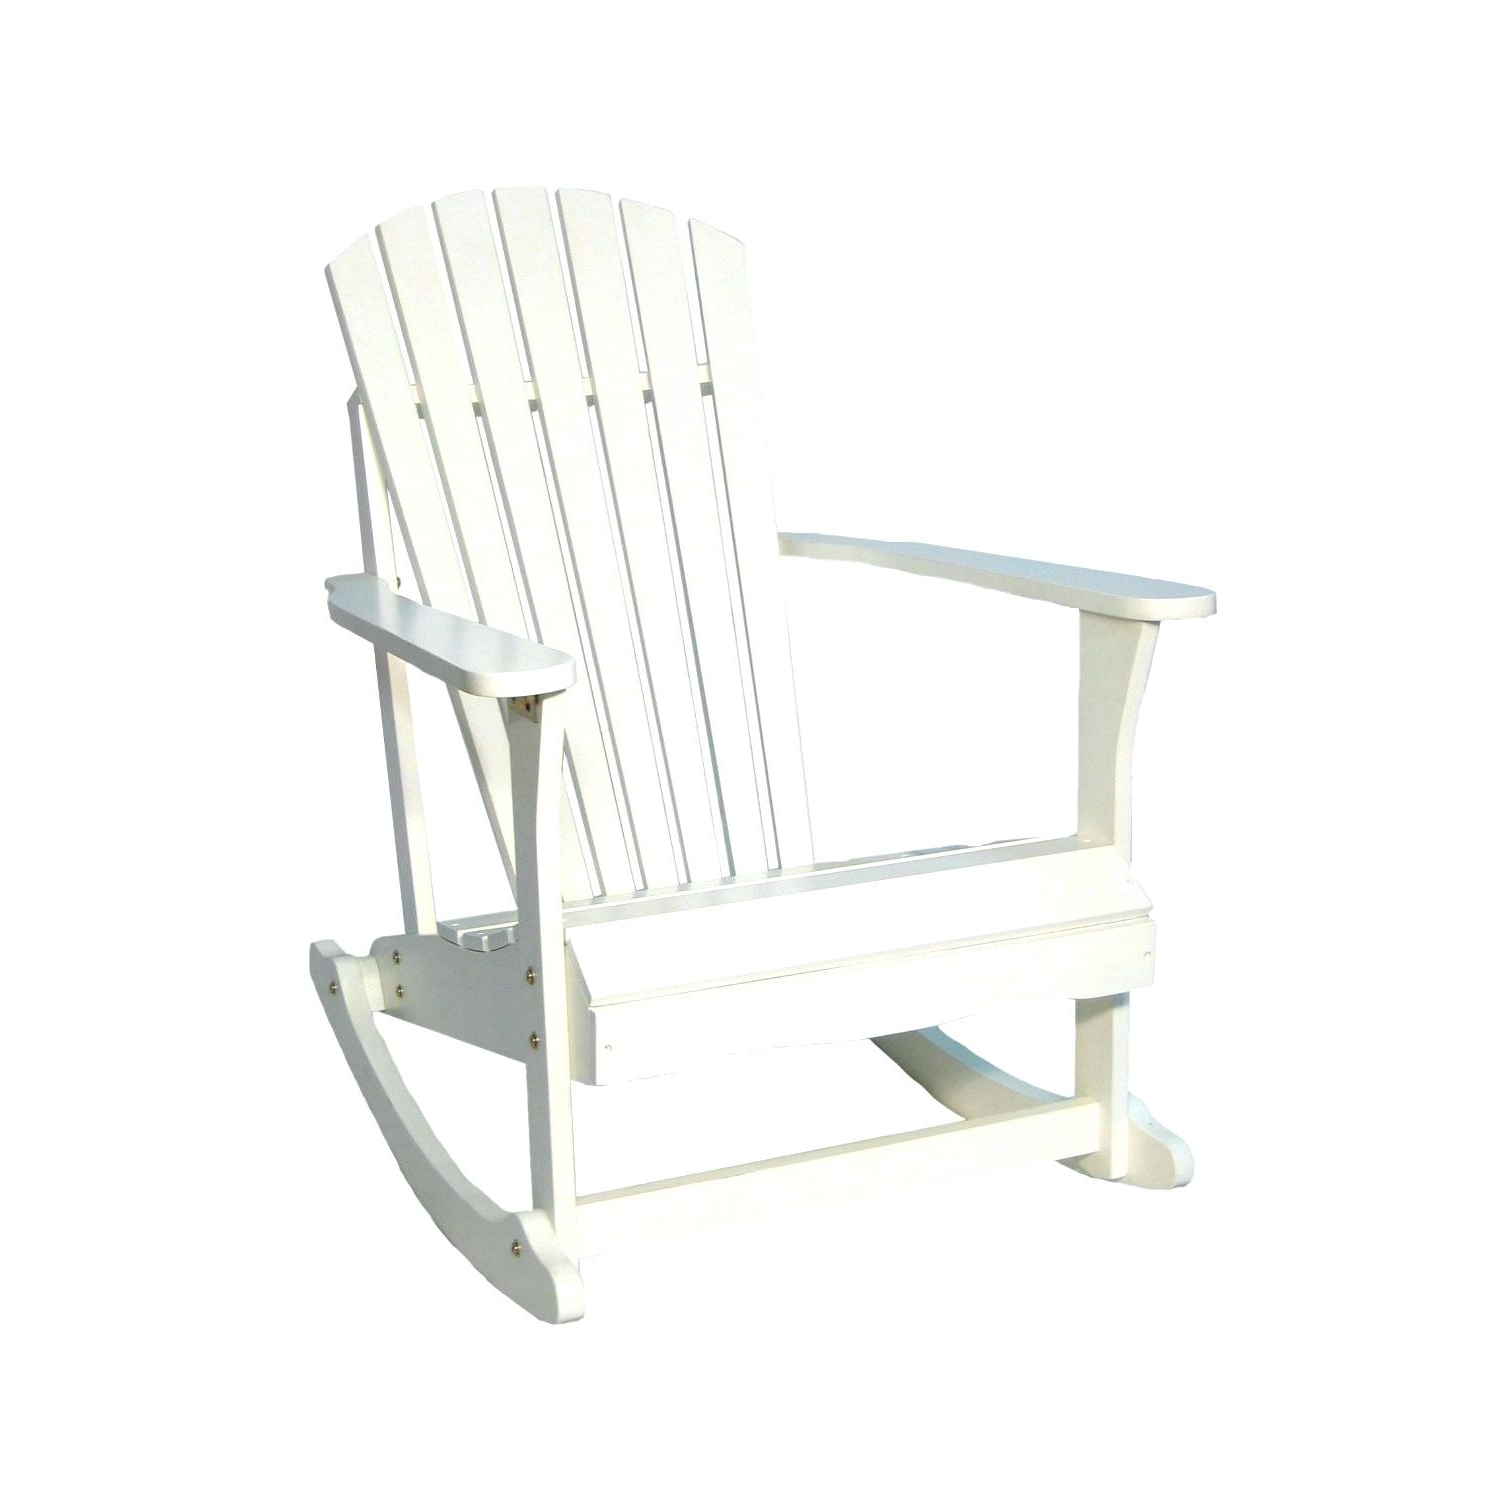 Chairs Rustic Outdoor Rocking Log Wooden White Chair Tractor Supply For Most Recent Zen Rocking Chairs (View 4 of 15)